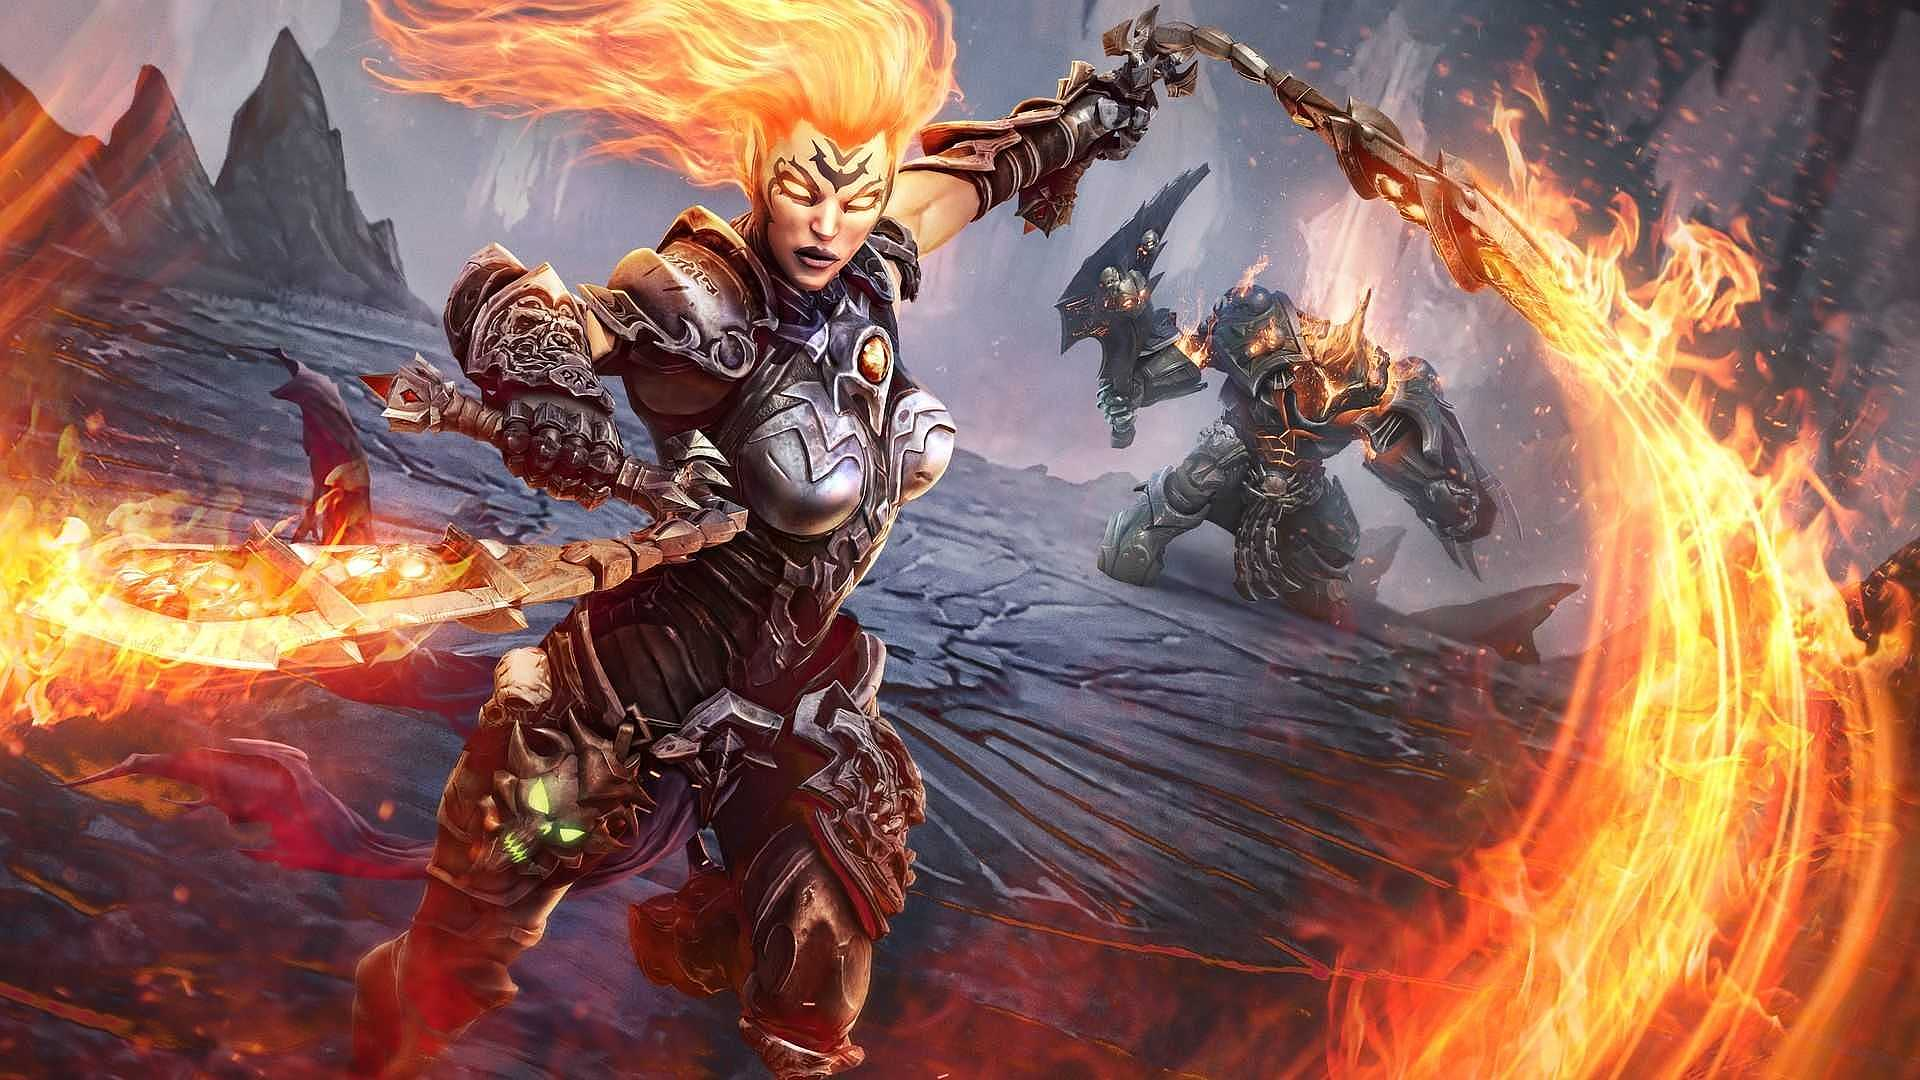 Darksiders Iii To Last 15 Hours On An Average Playthrough Hdr